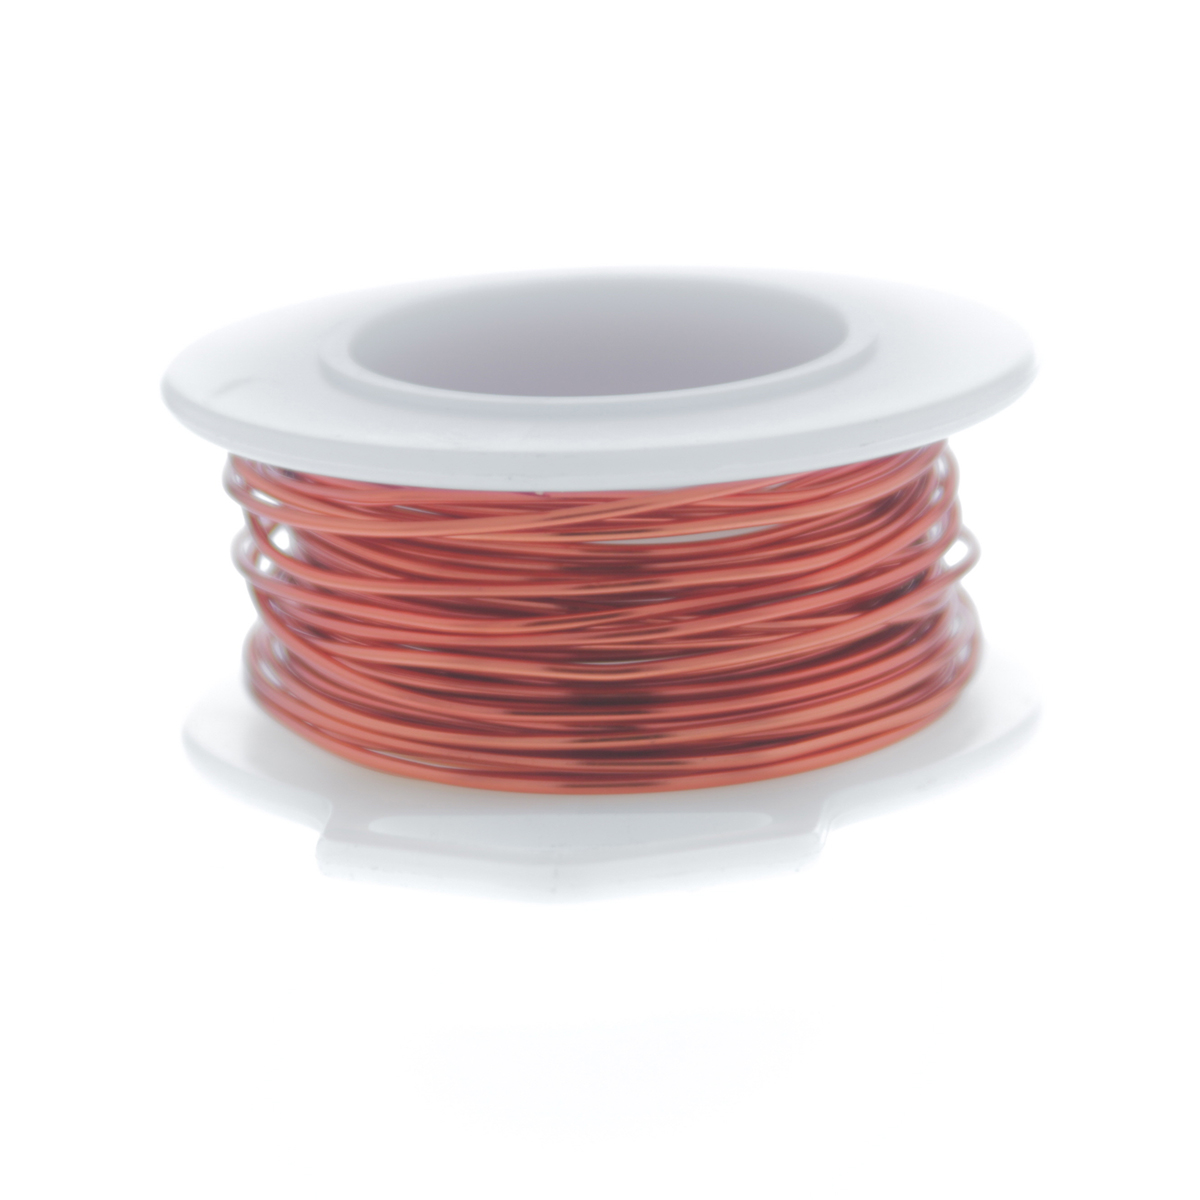 32 Gauge Round Silver Plated Orange Copper Craft Wire - 150 ft